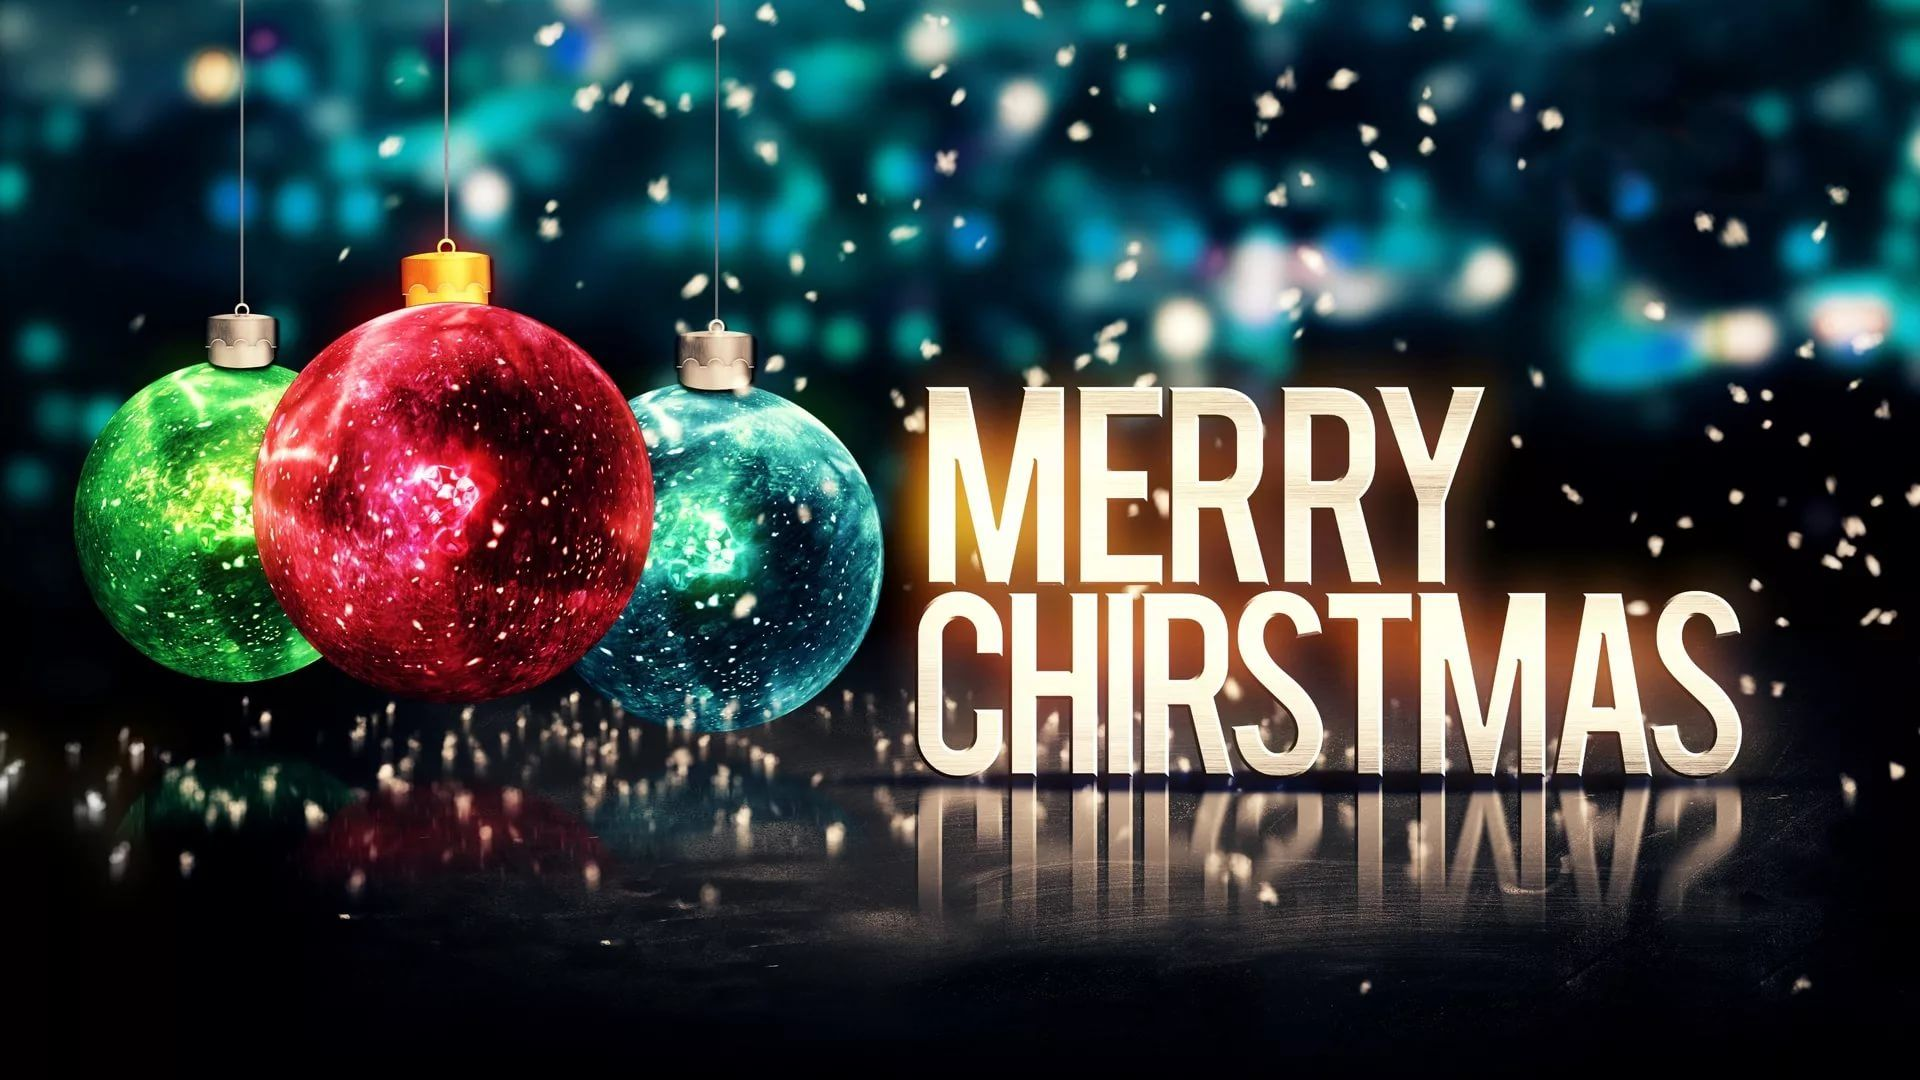 1920x1080 Hd Christmas Wallpapers Top Free 1920x1080 Hd Christmas Backgrounds Wallpaperaccess